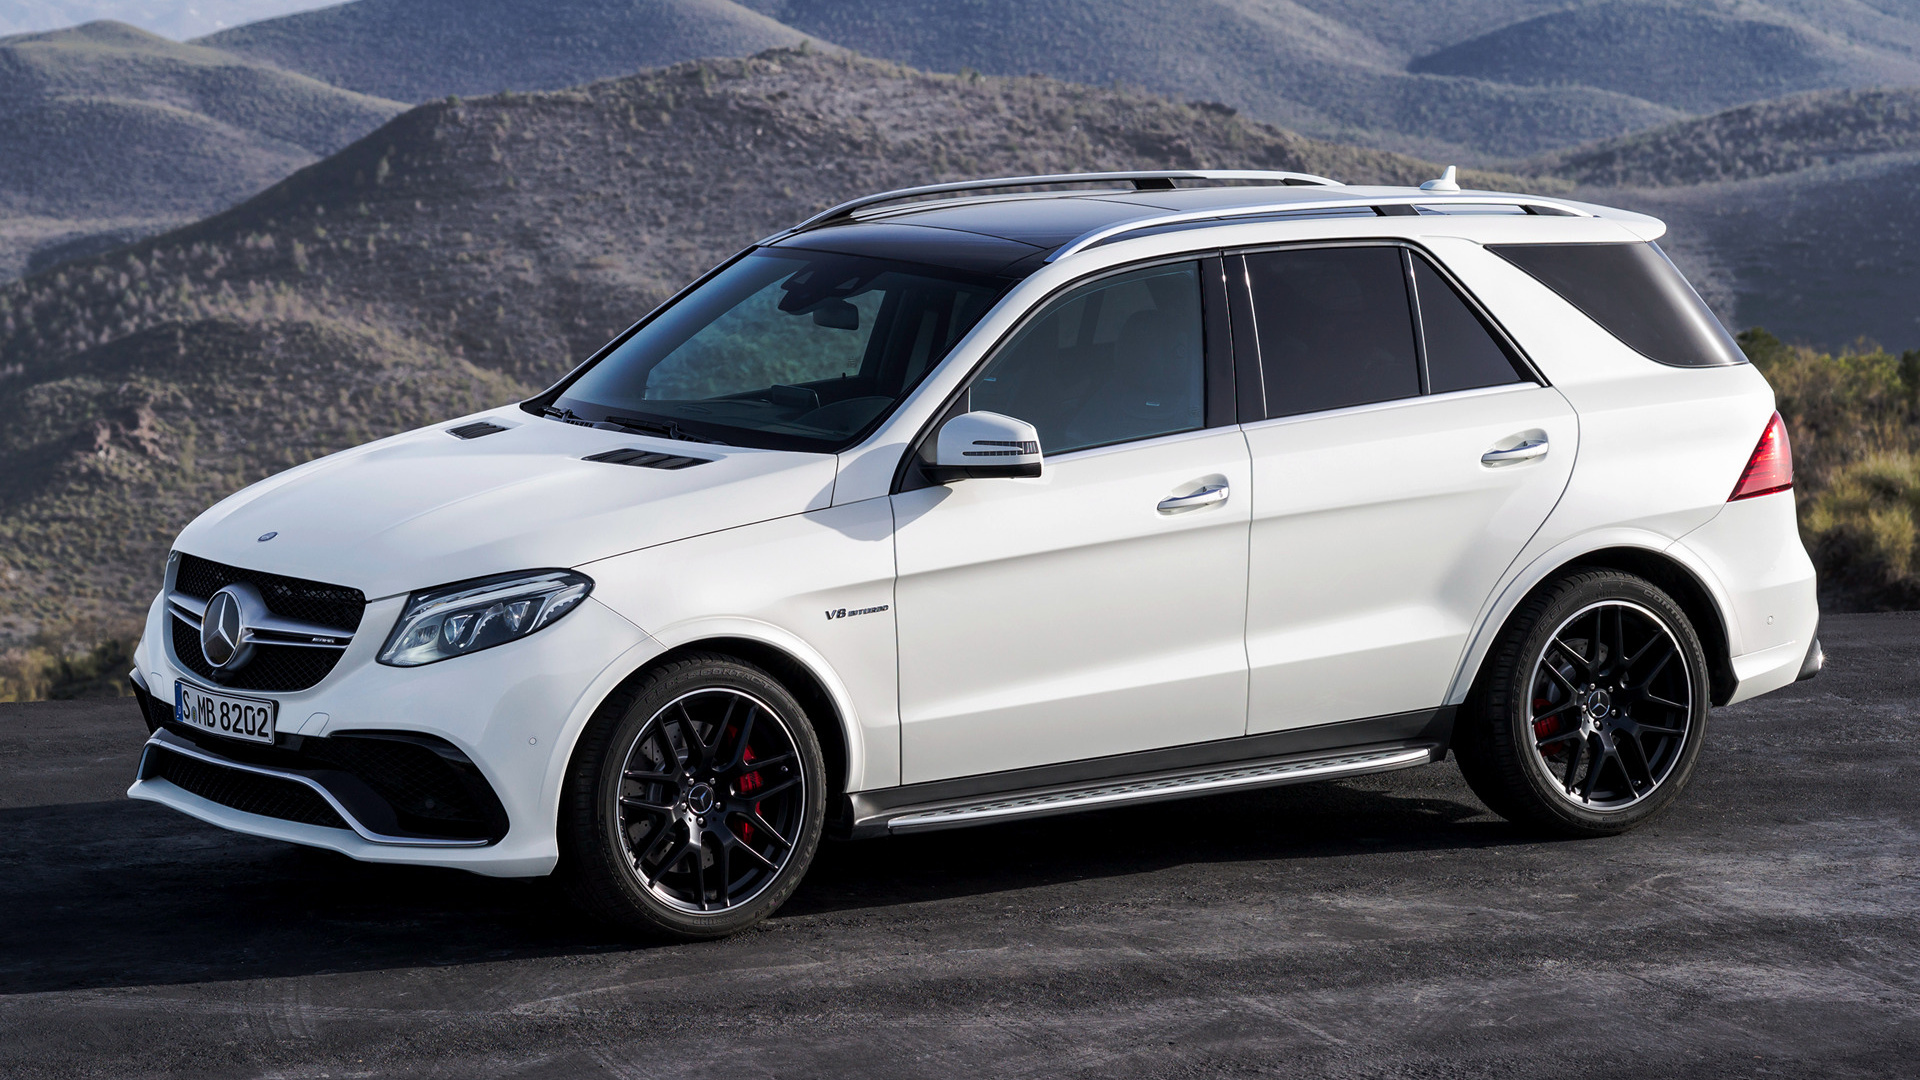 mercedes amg gle 63 s 2015 wallpapers and hd images car pixel. Black Bedroom Furniture Sets. Home Design Ideas